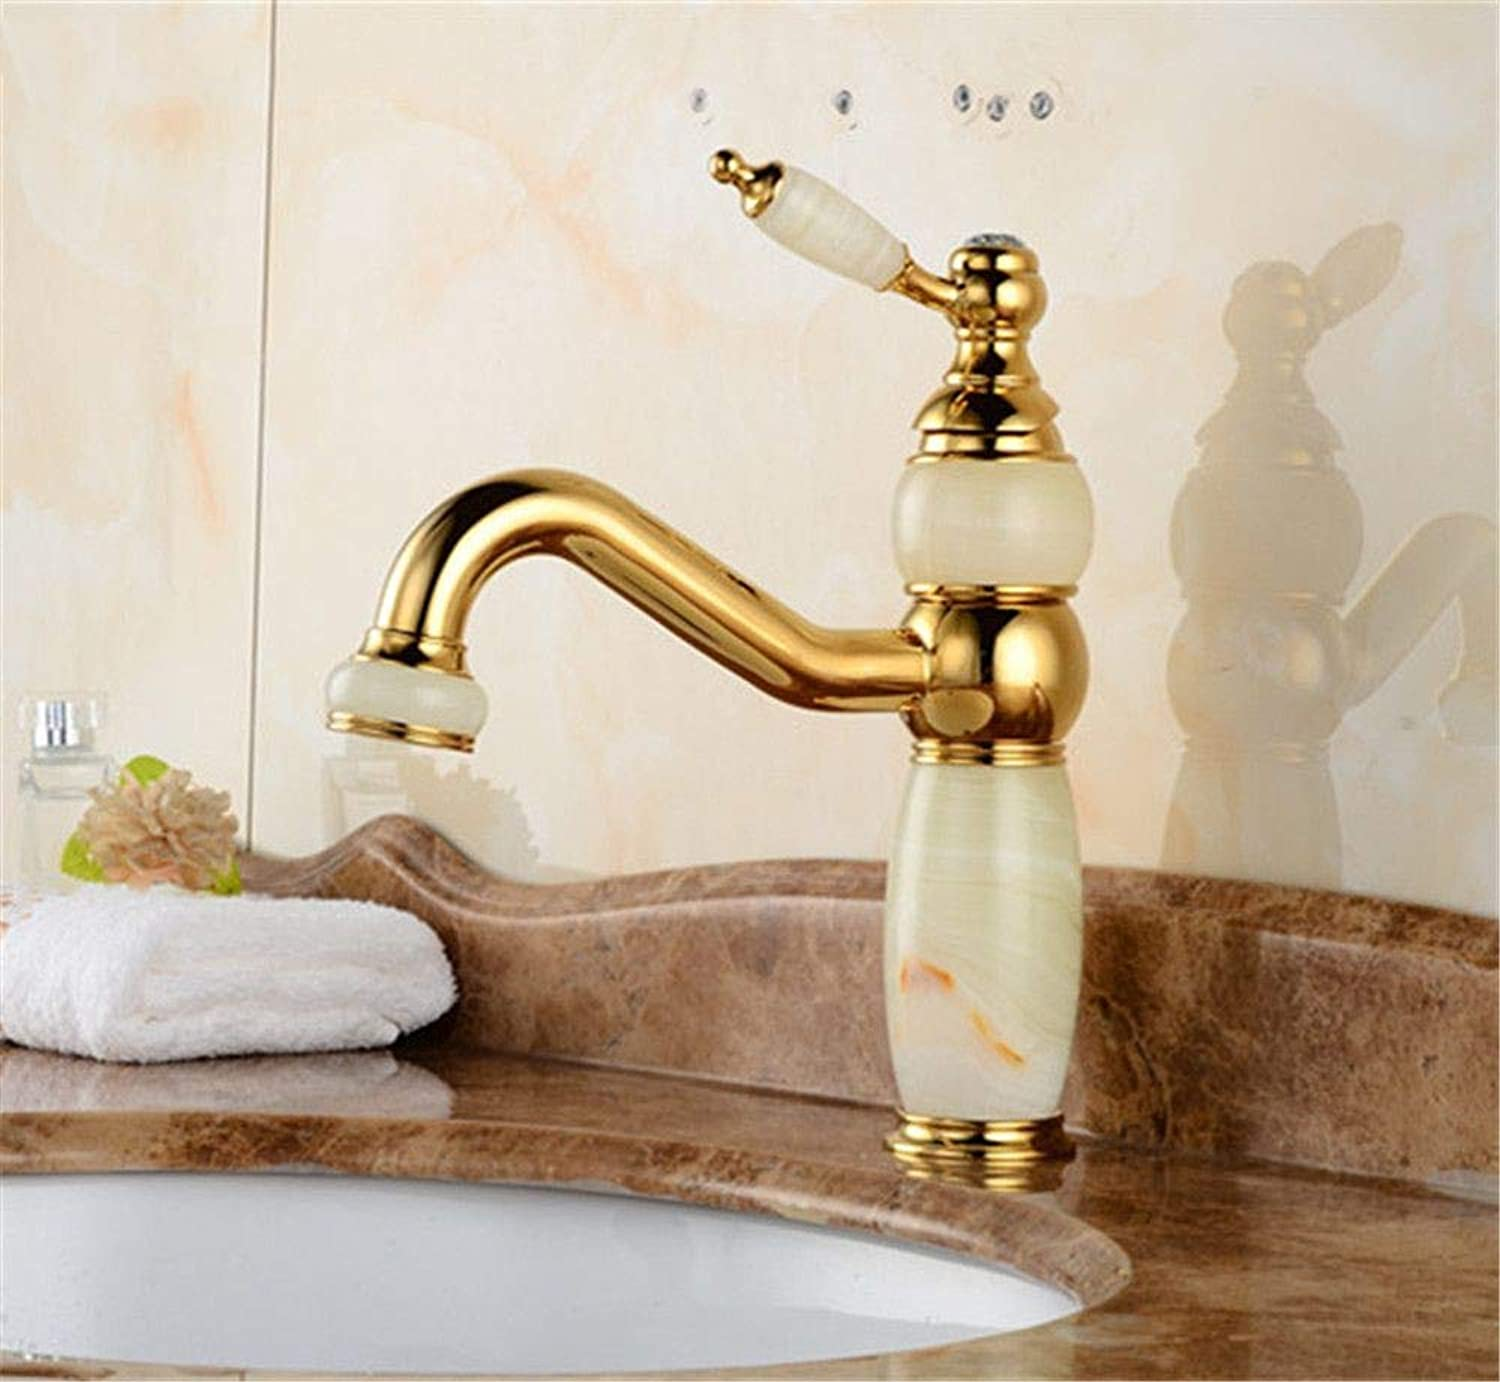 YAWEDA Natural Jade Basin Faucet Bathroom Sink Faucet gold-Plated Single-Hole Hot and Cold Water Mixer Hotel Bathroom Faucet Single Handle with Aerator Single-Joint